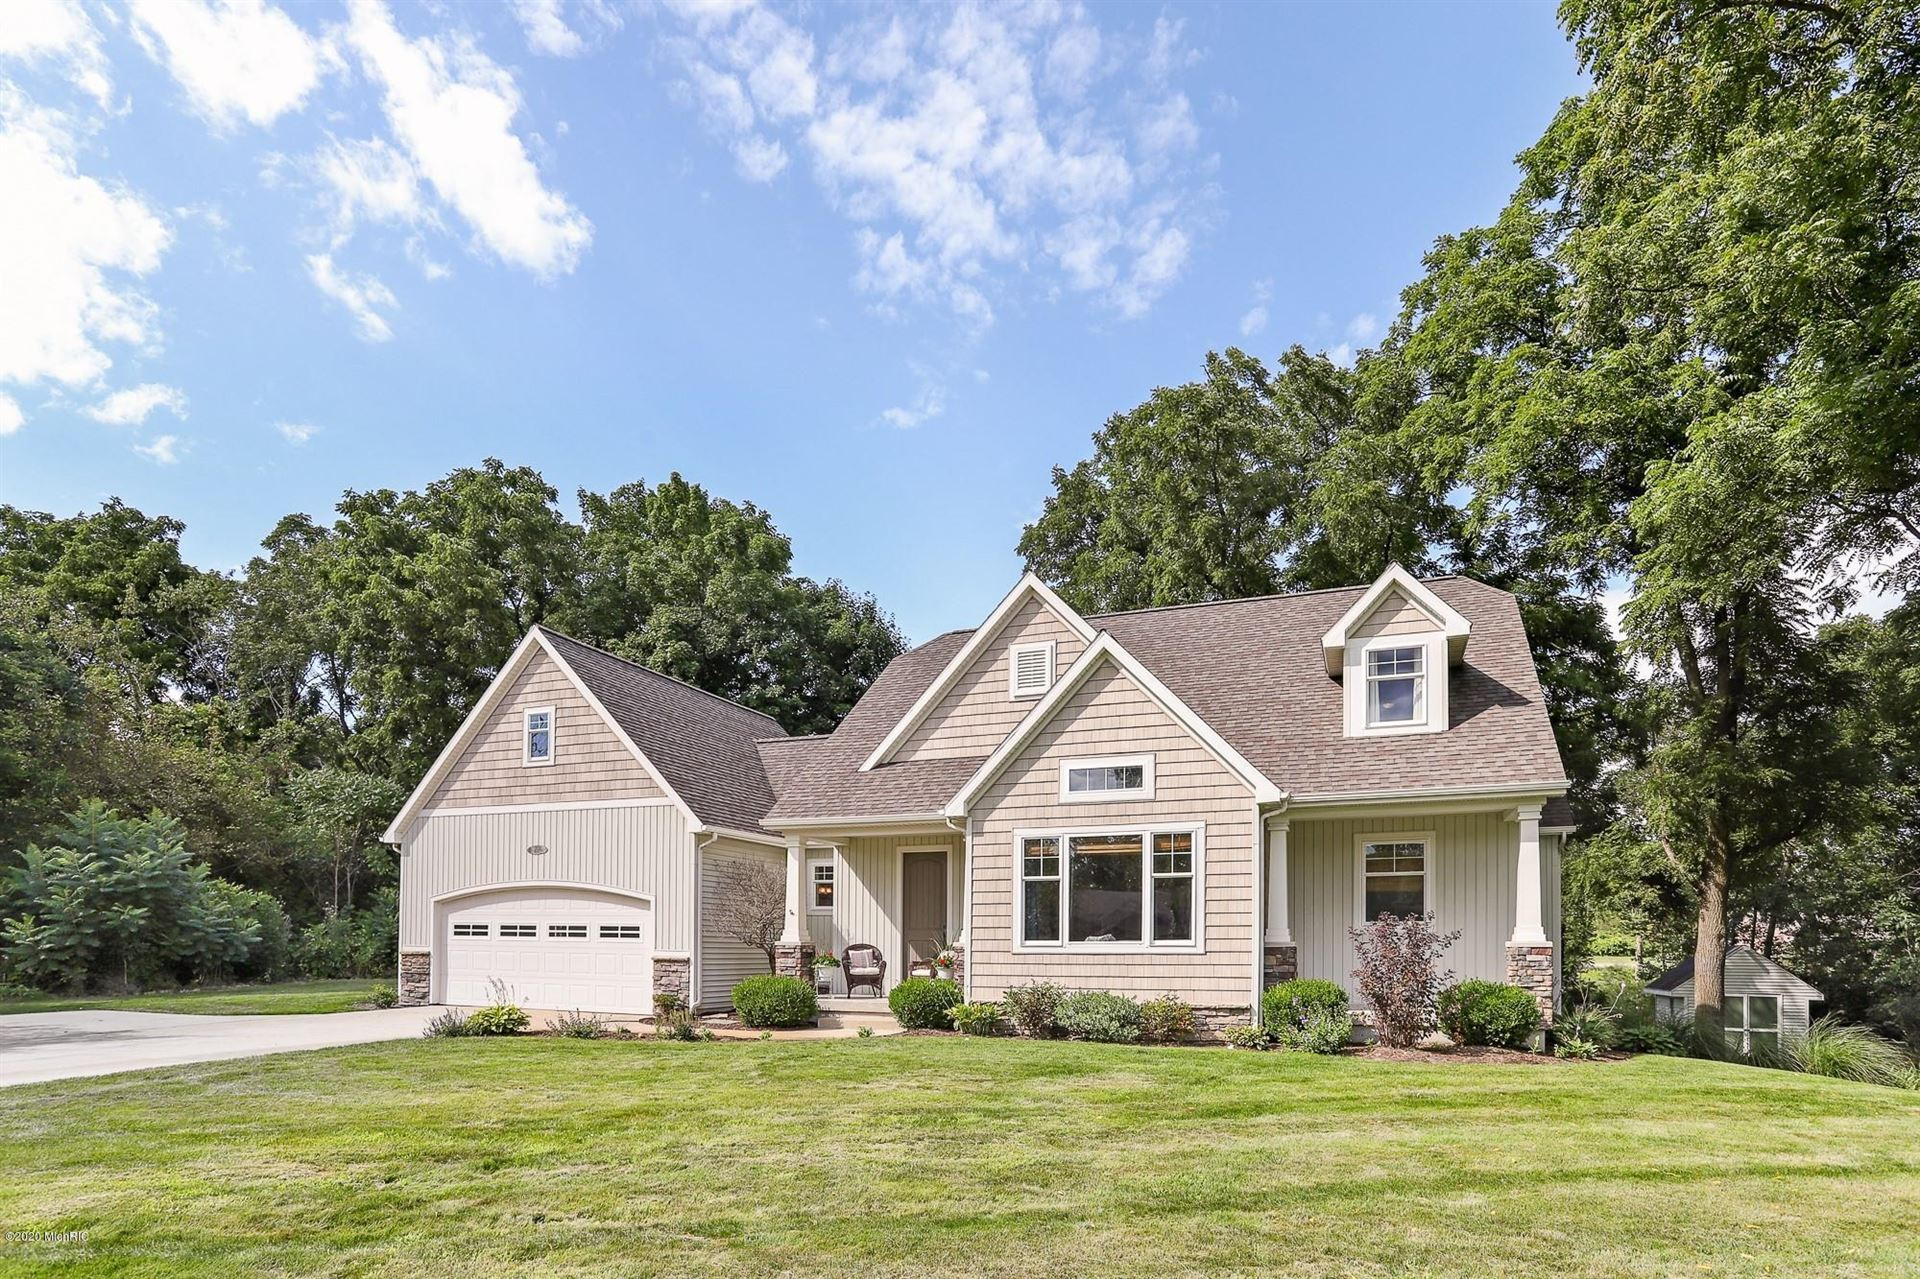 905 Meyer Lane, Marne, MI 49435 - MLS#: 20031409